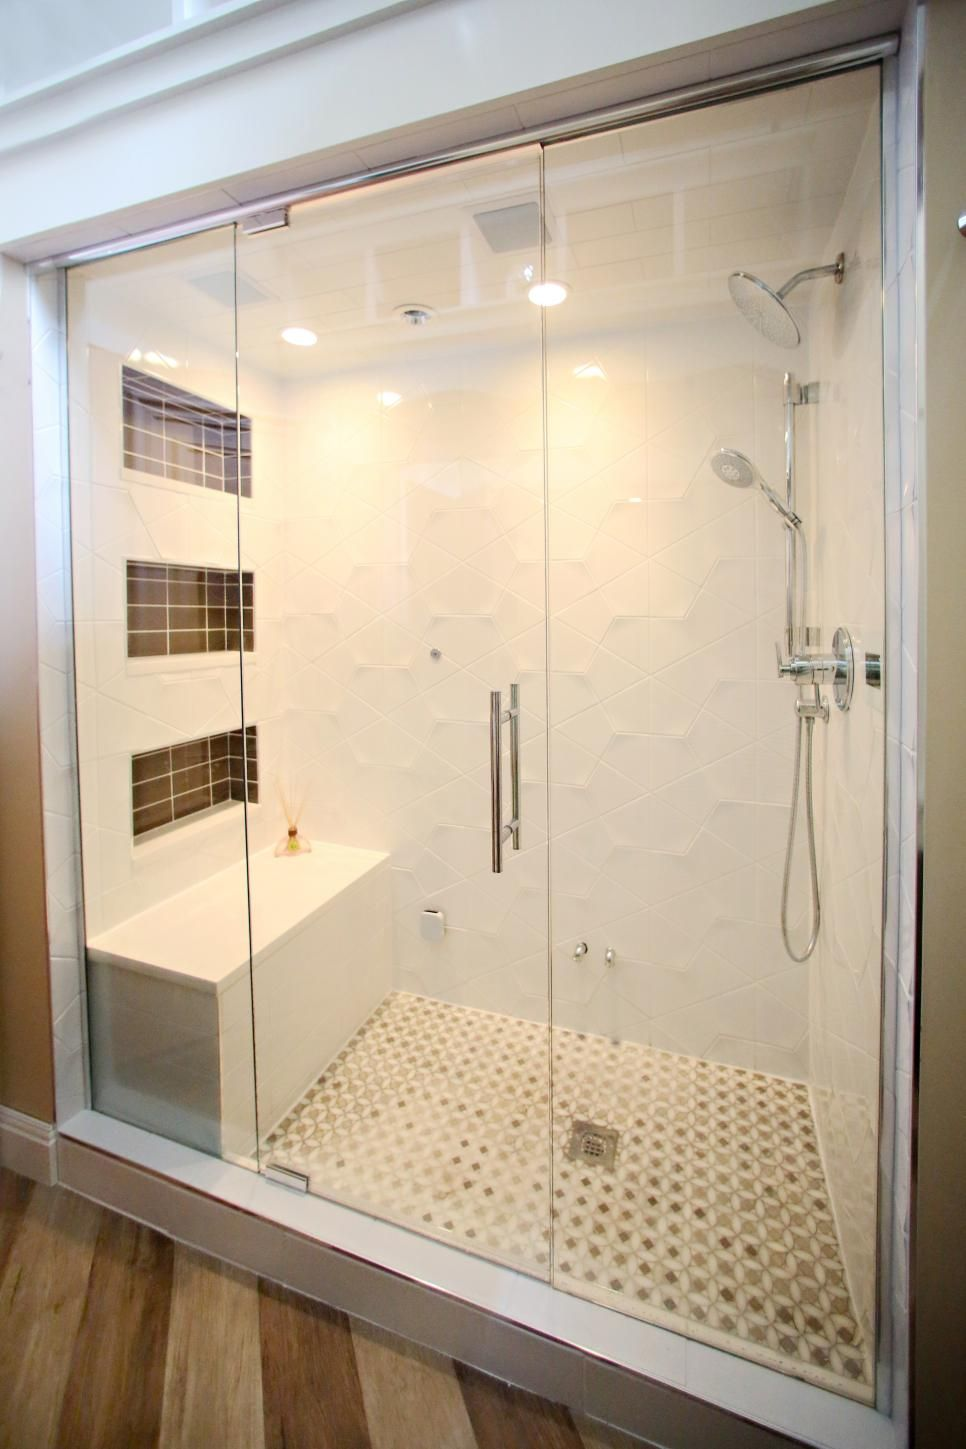 pictures of dazzling showers | decor | pinterest | bathroom, shower